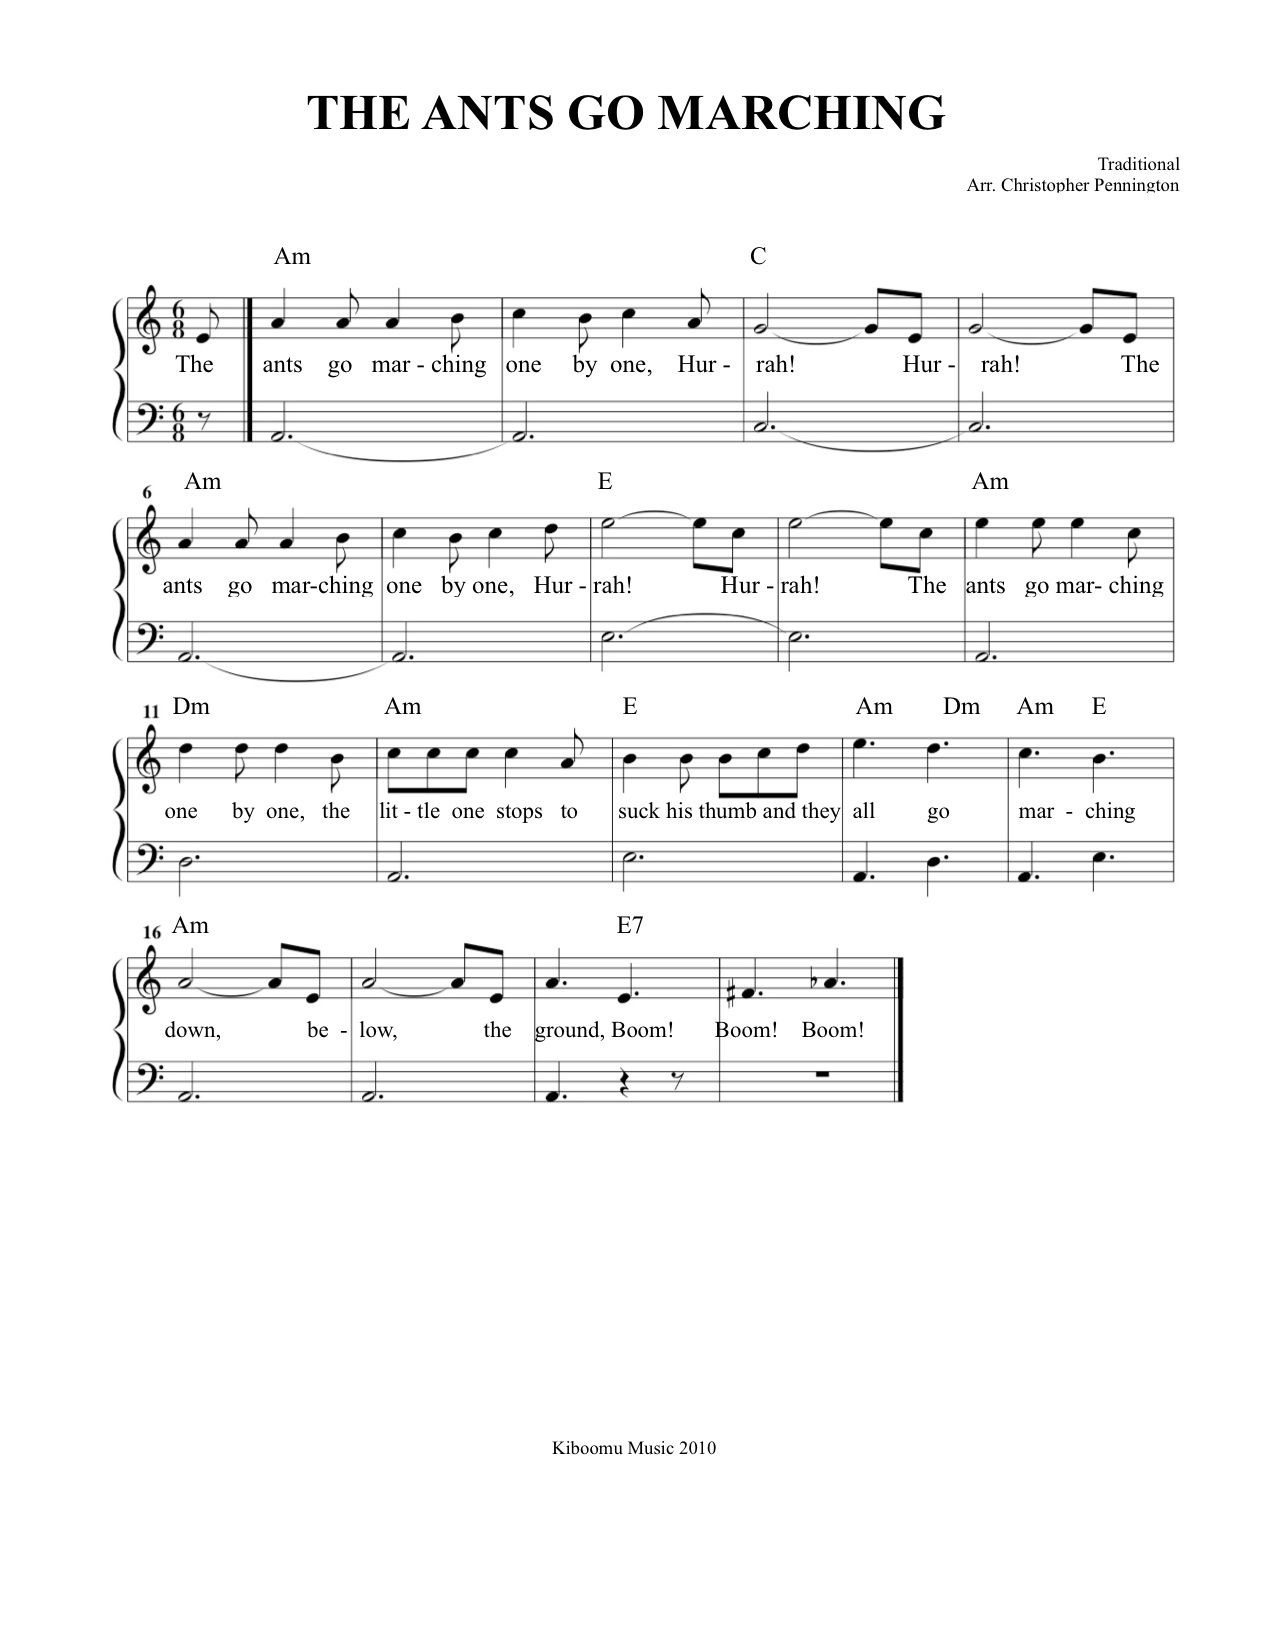 The Ants Go Marching Sheet Music And Song From Kiboomu